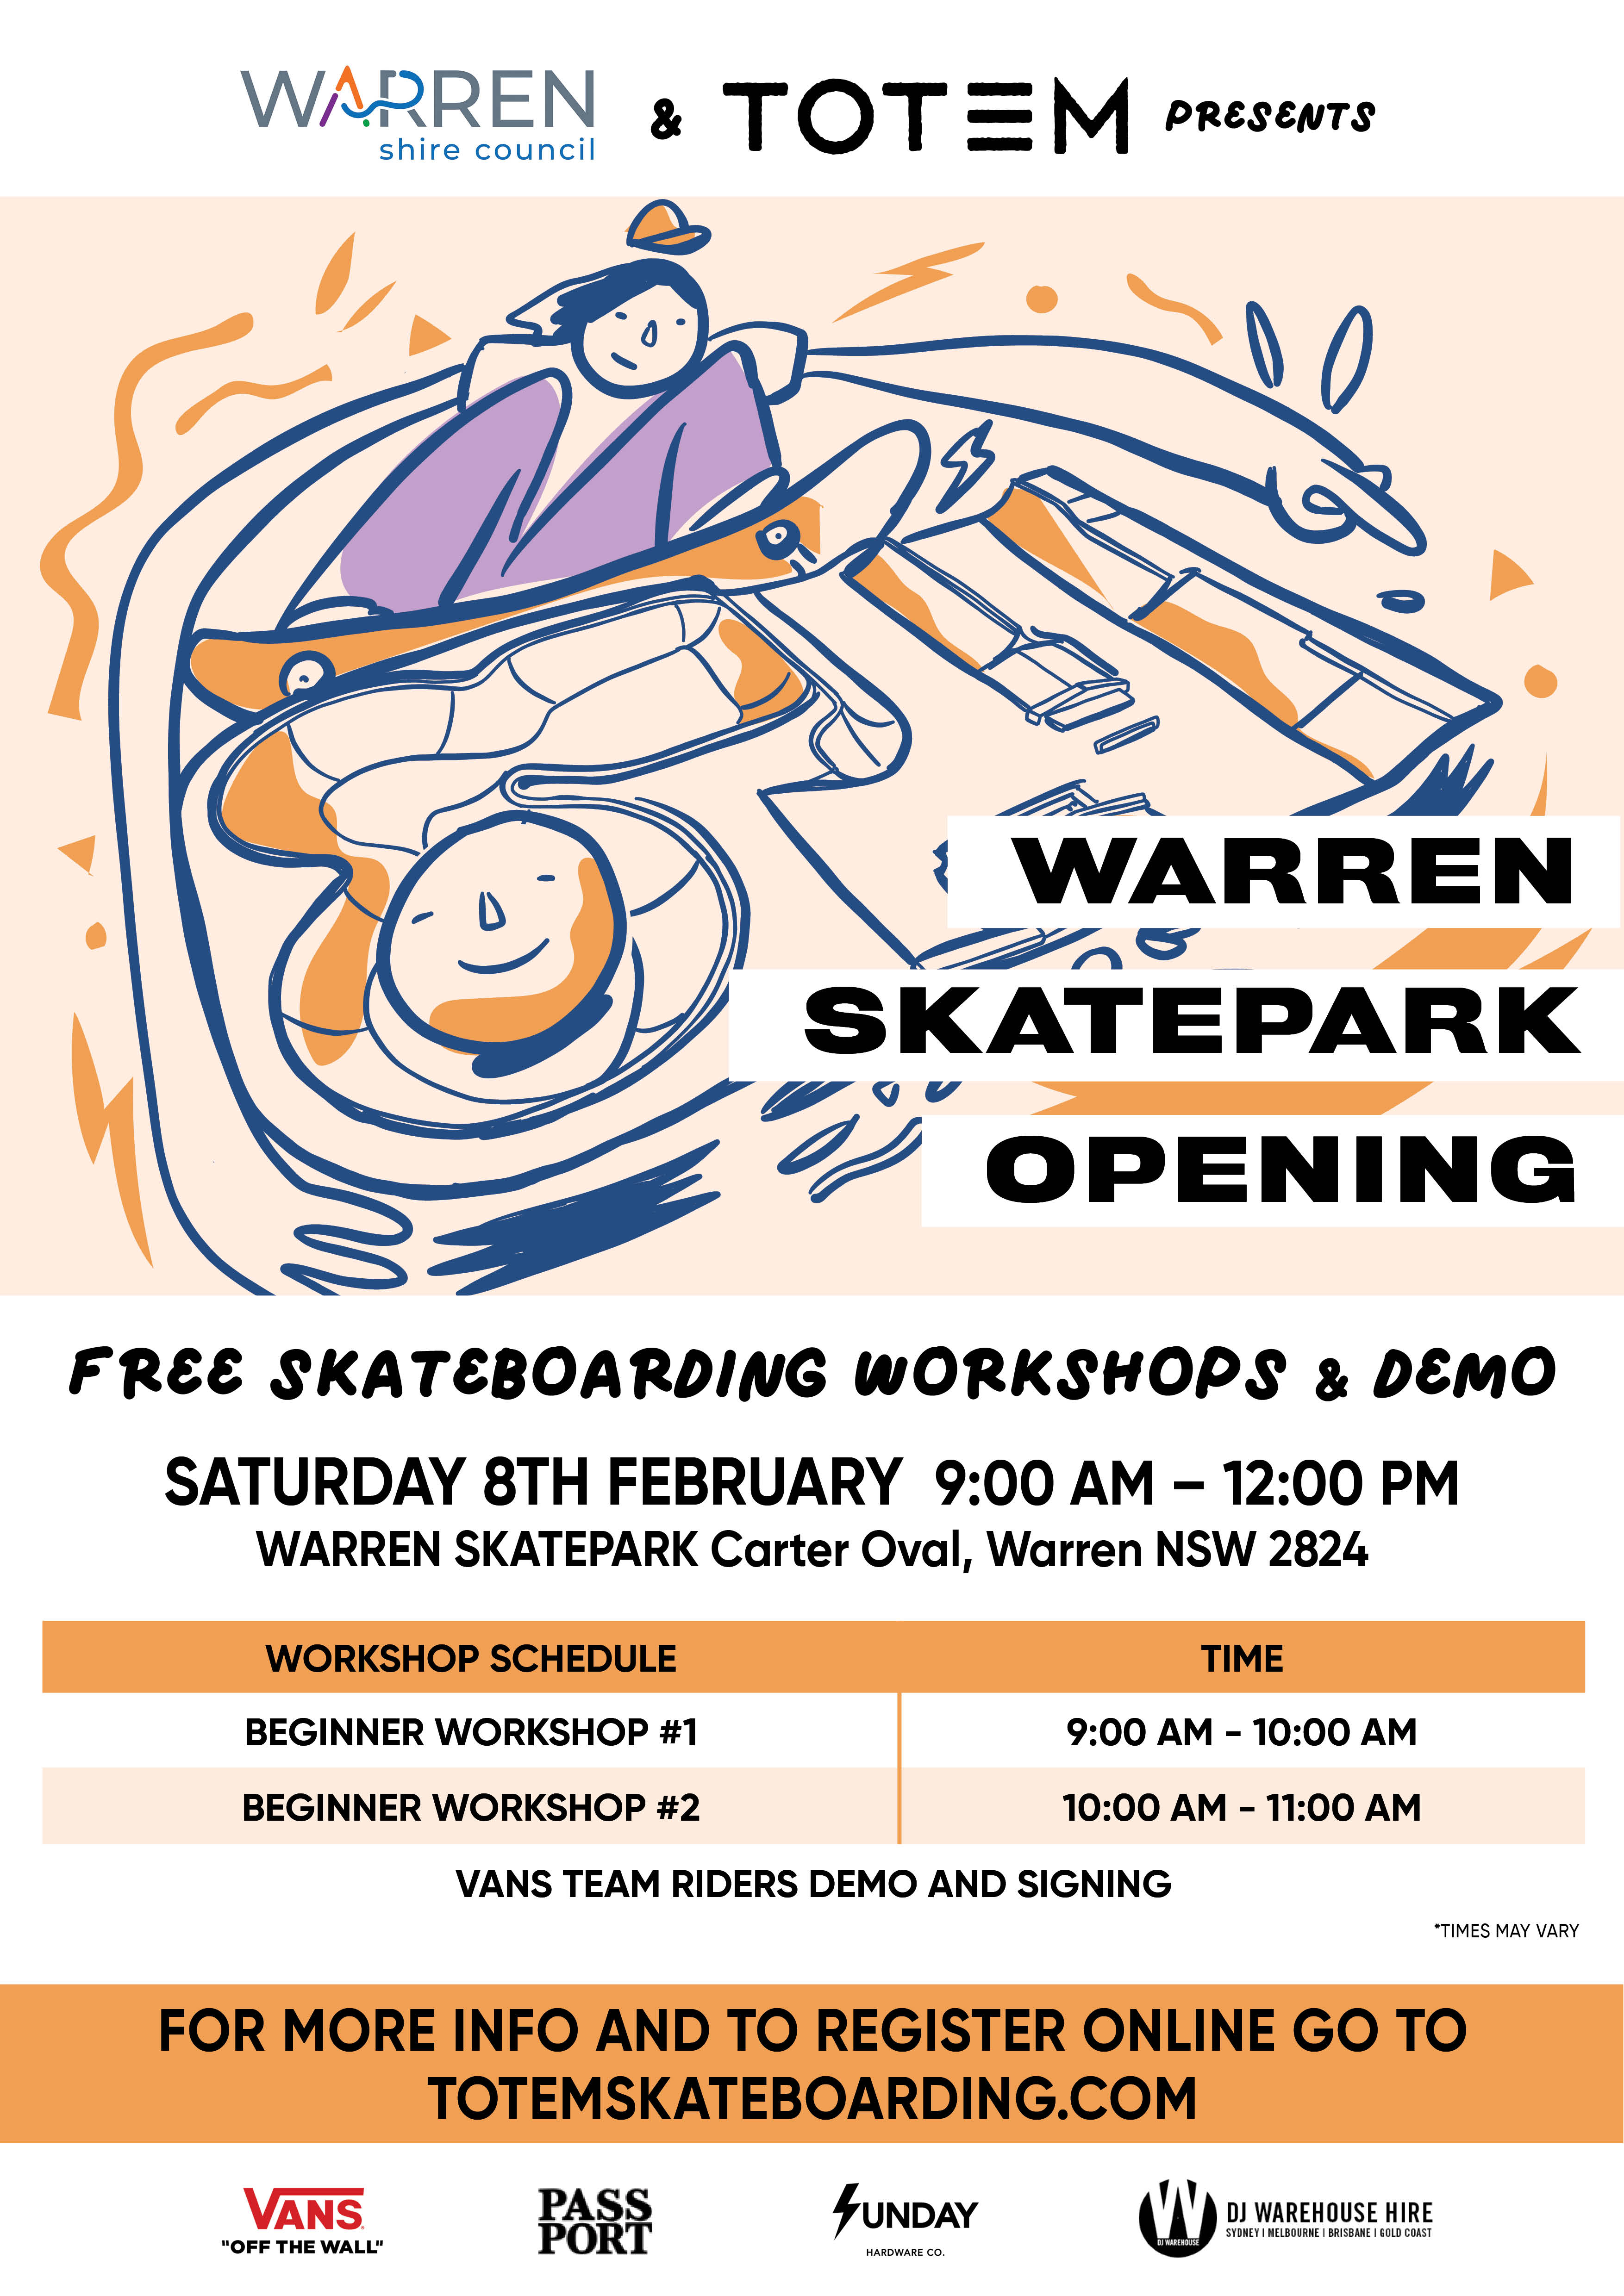 Warren Skate Park Opening and Workshops